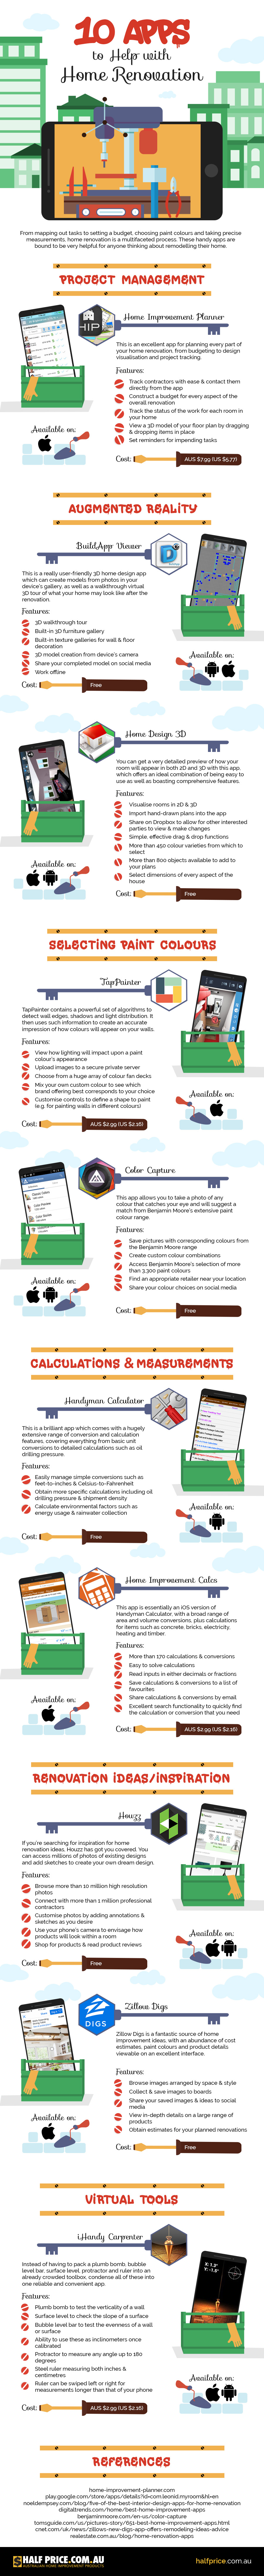 Home renovation apps infographic